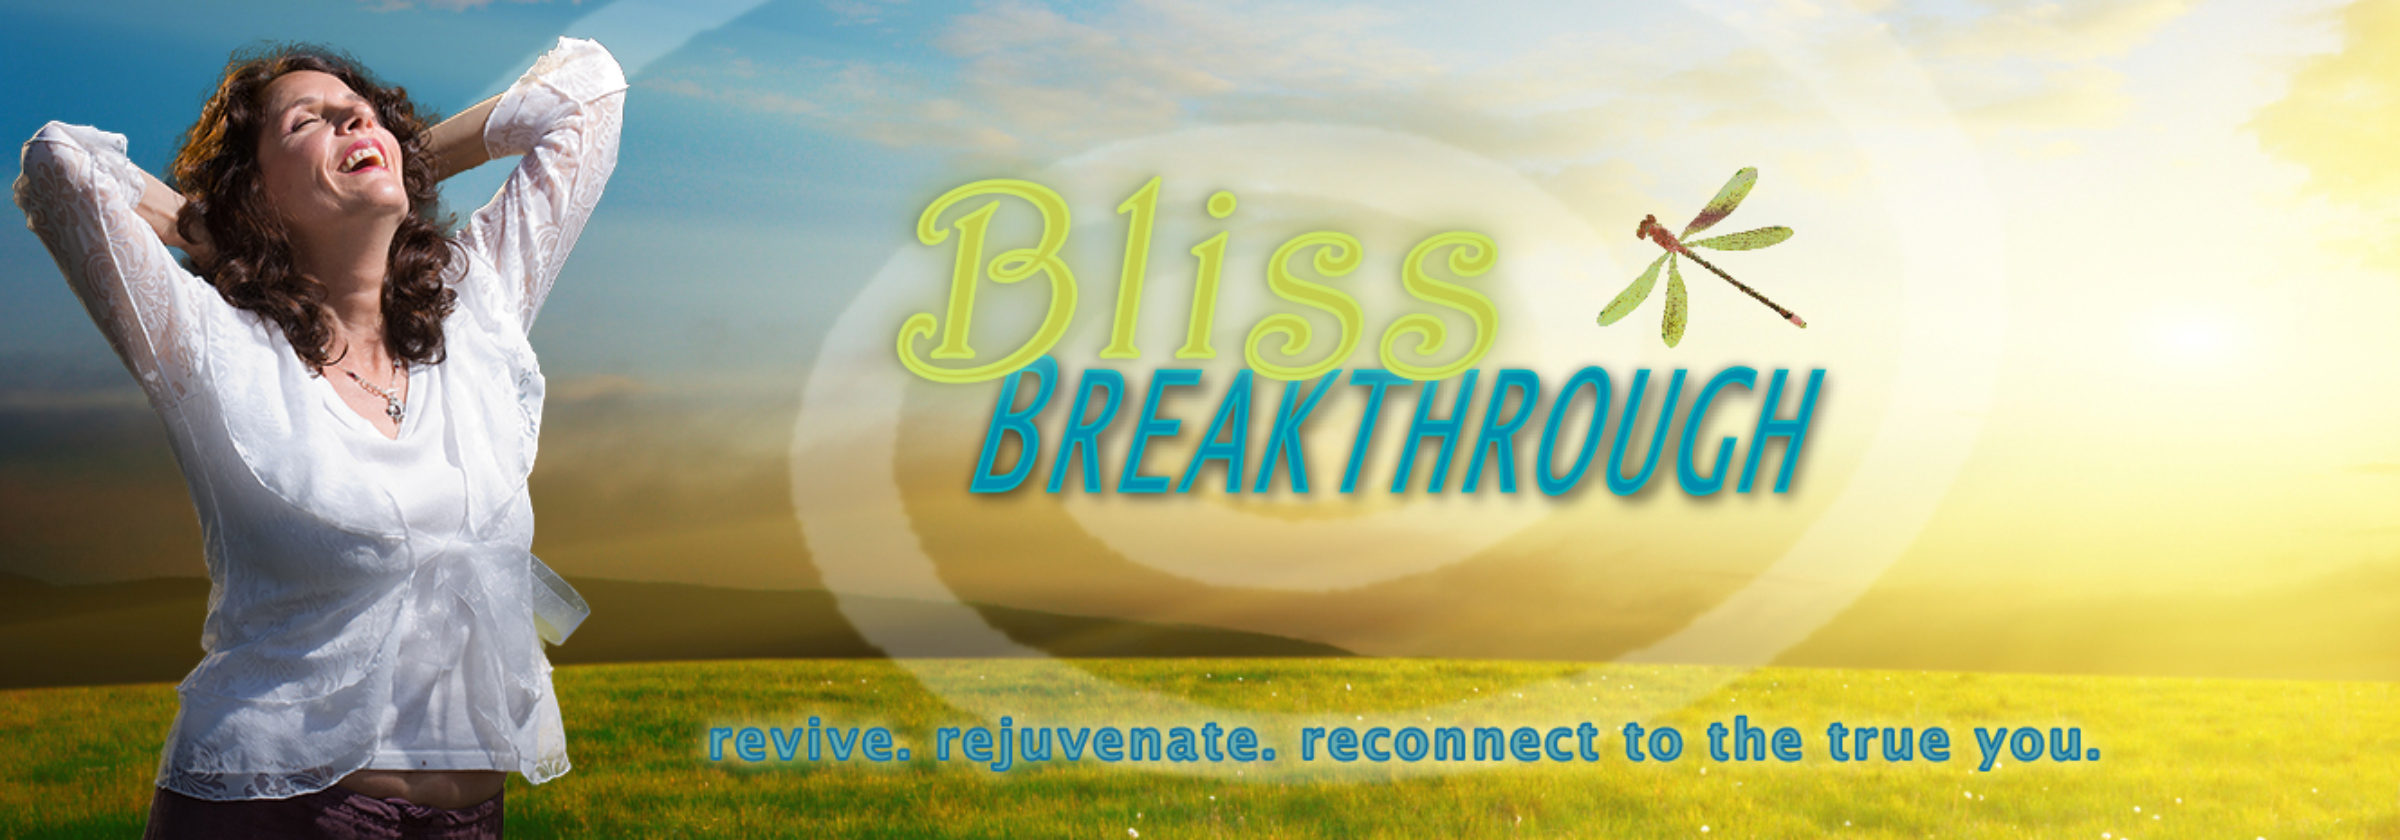 Bliss Breakthrough